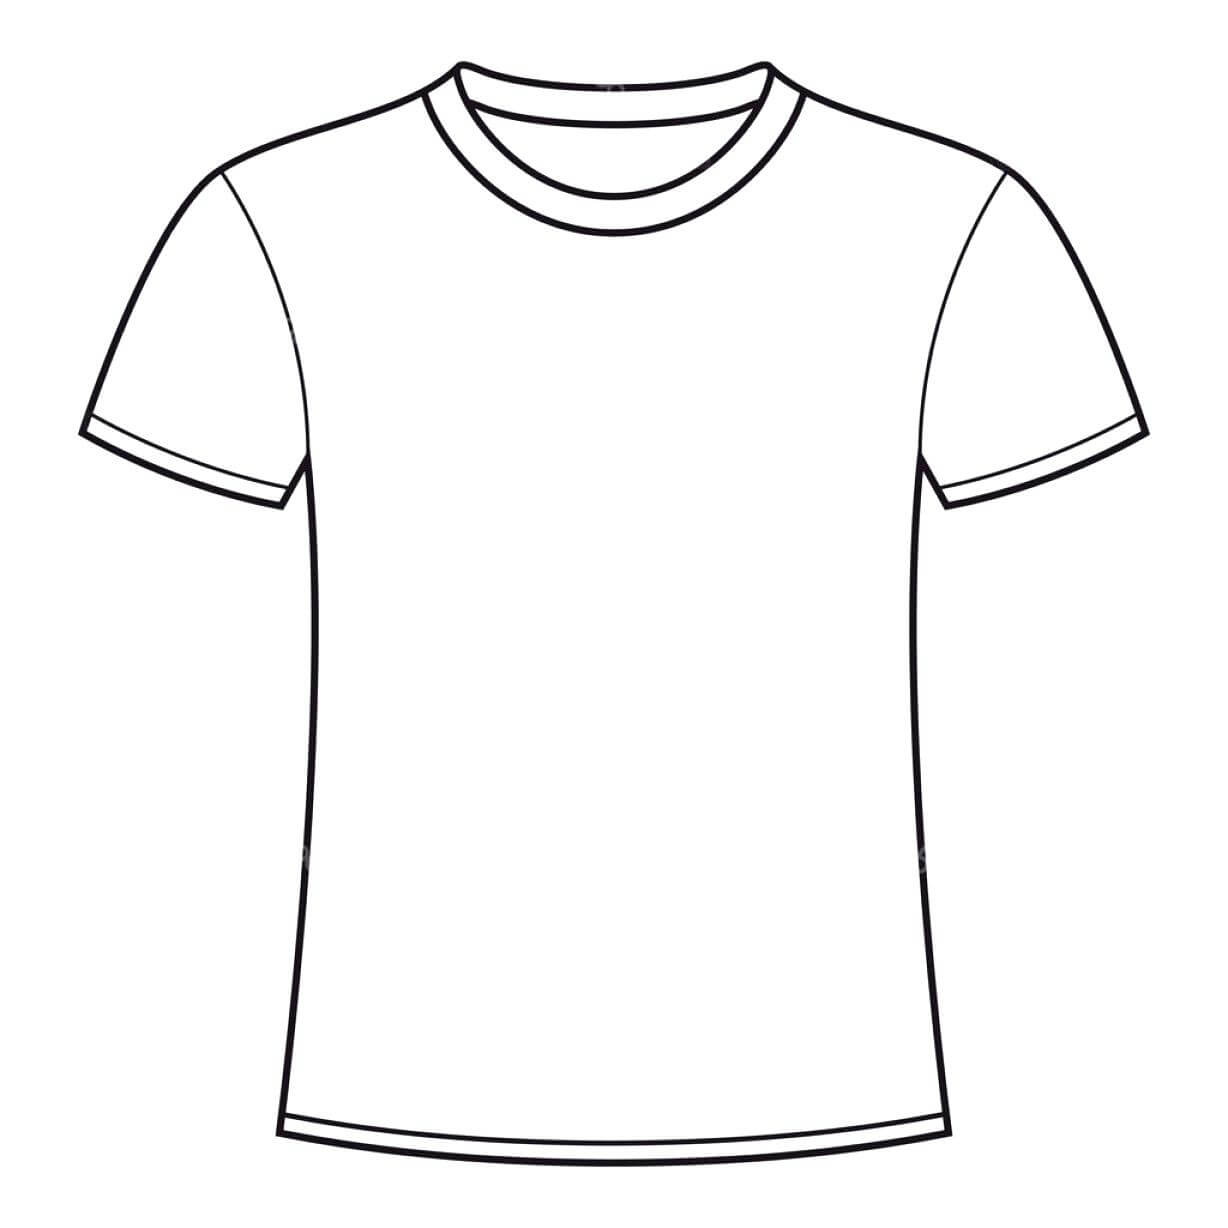 Printable Blank T Shirt Outline ✓ T Shirt Collections with regard to Blank Tshirt Template Printable